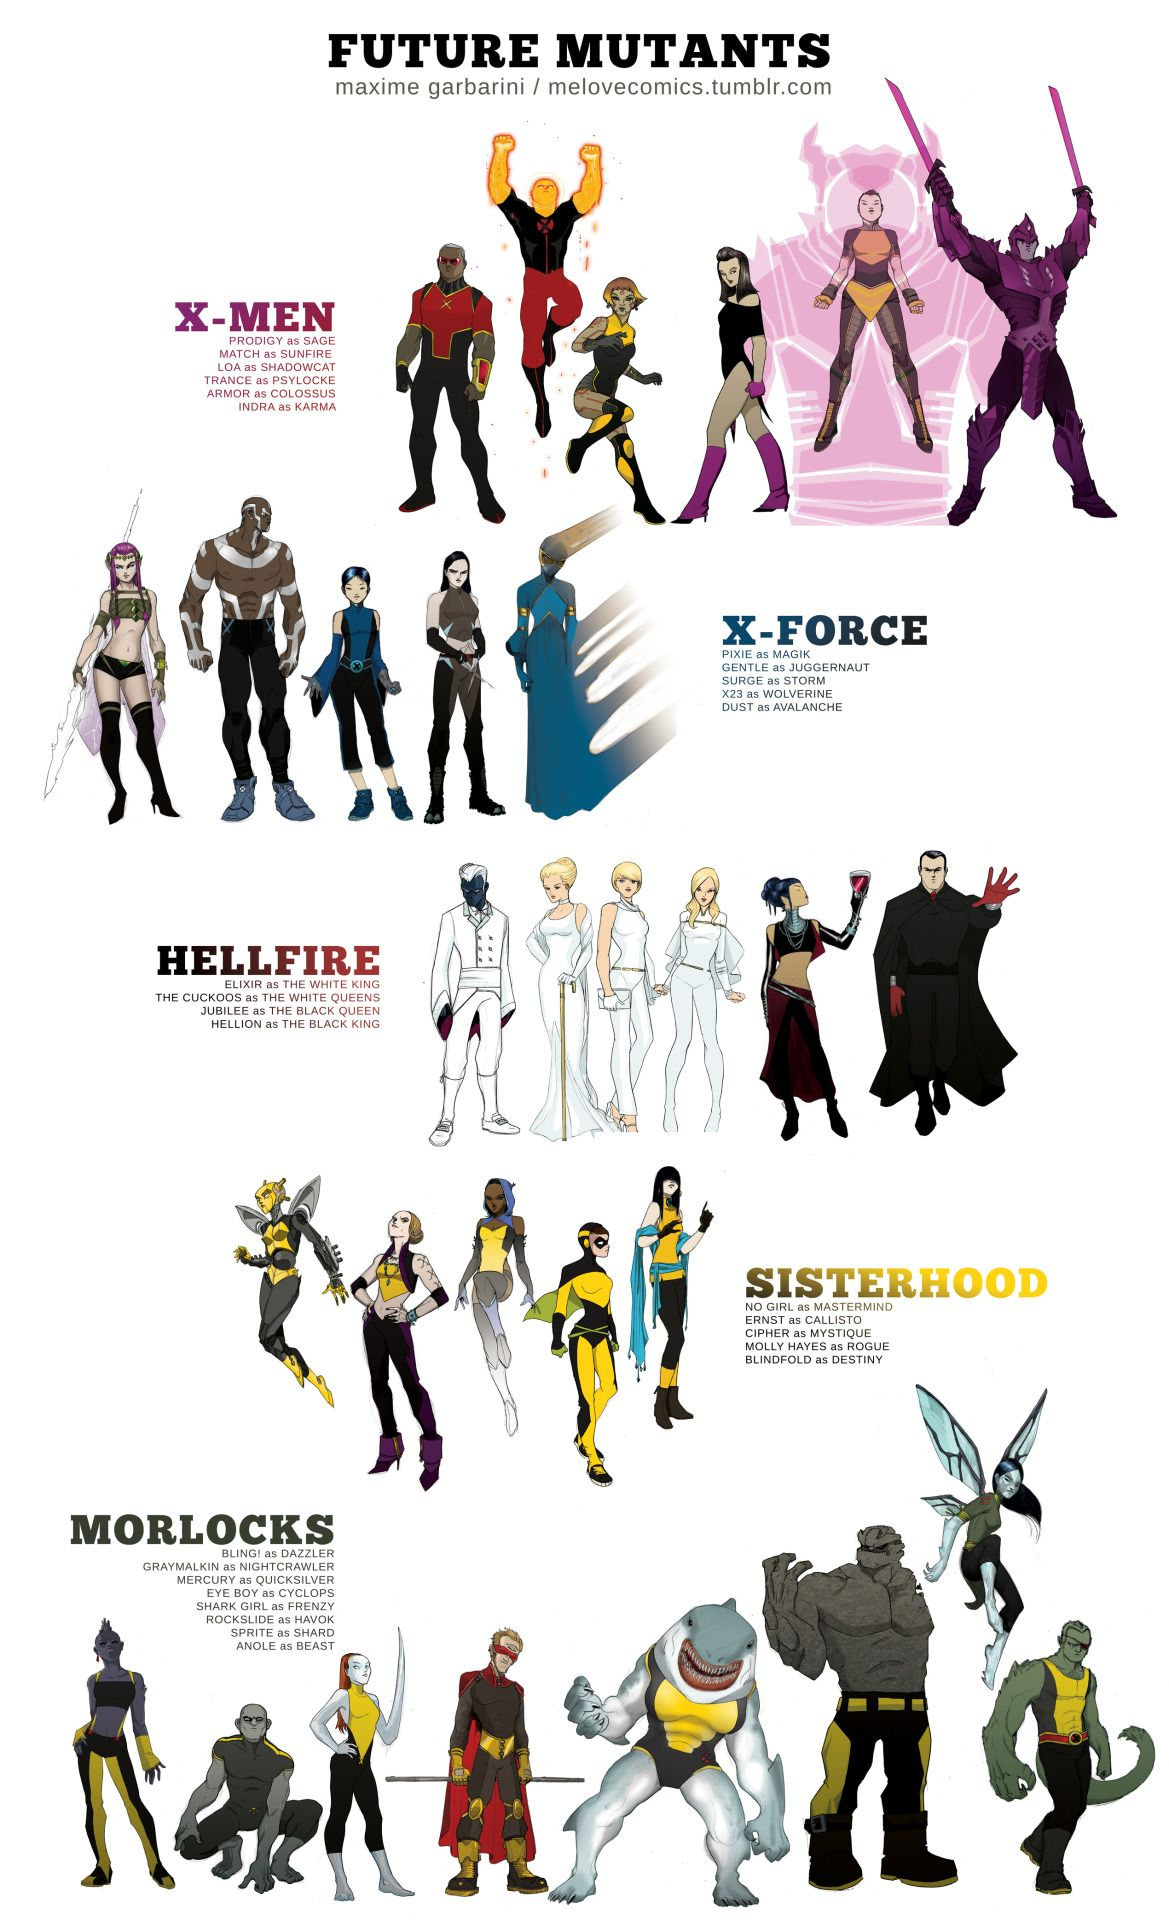 THE FUTURE MUTANTS…as I see it. X-MEN Prodigy as Sage Match as Sunfire Loa as Shadowcat Trance as